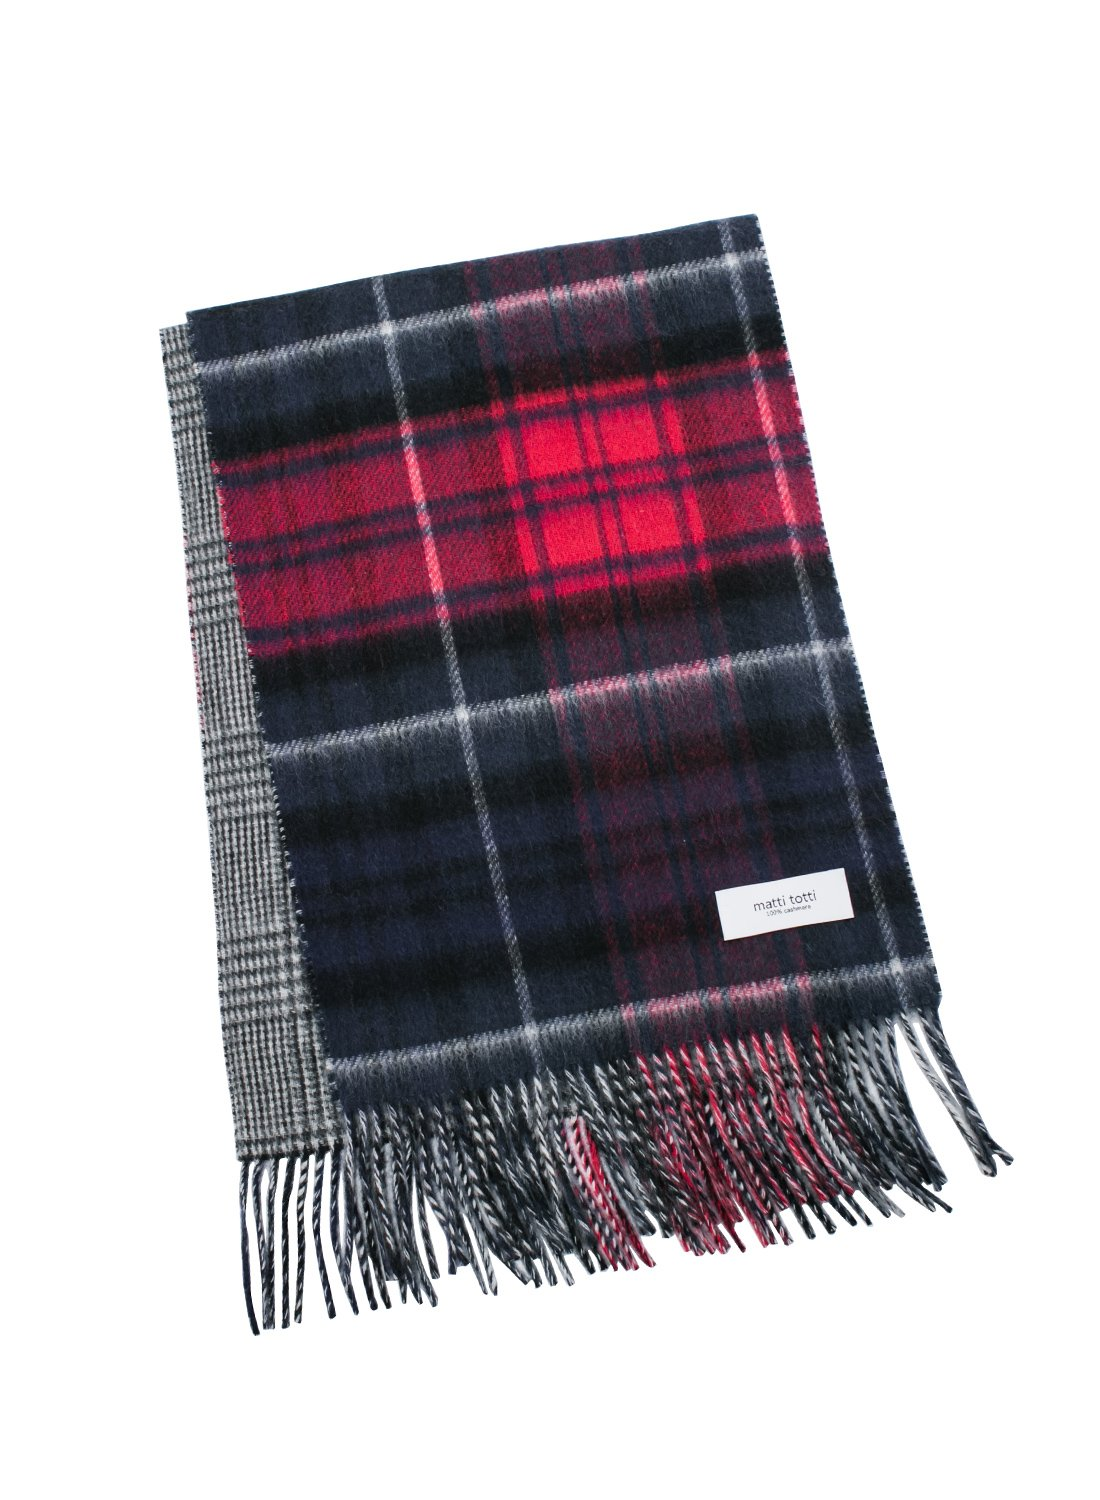 Red X Navy 100% Cashmere Reversible Scarf Muffler Women Gift Scarves Wrap Blanket C0311B1-3